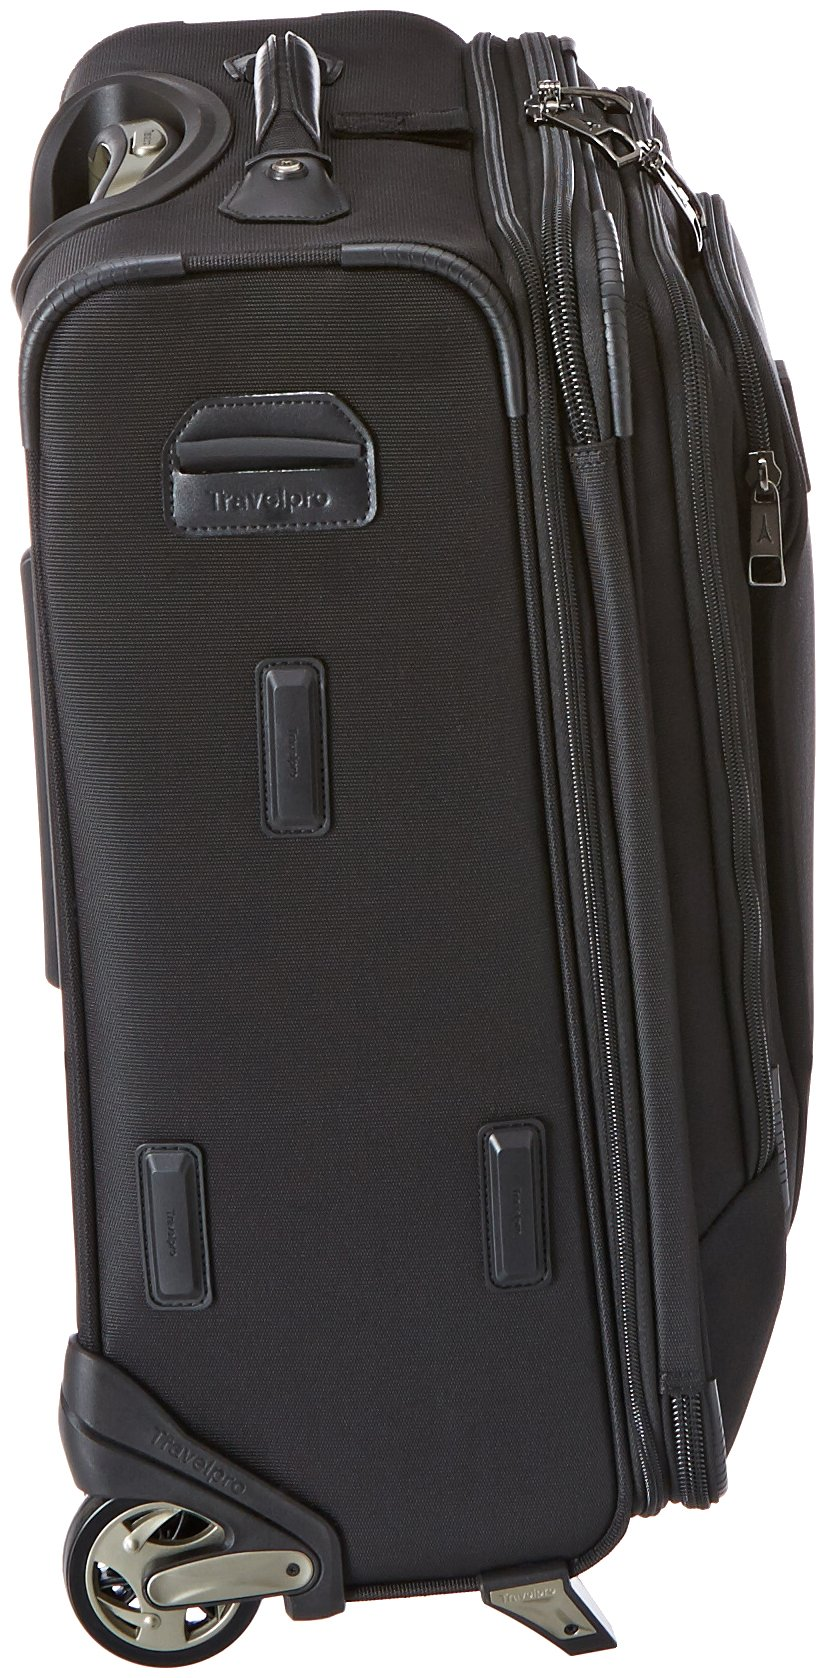 Travelpro Crew 10 20 '' Expandable Business Plus Rollaboard, Balck by Travelpro (Image #3)